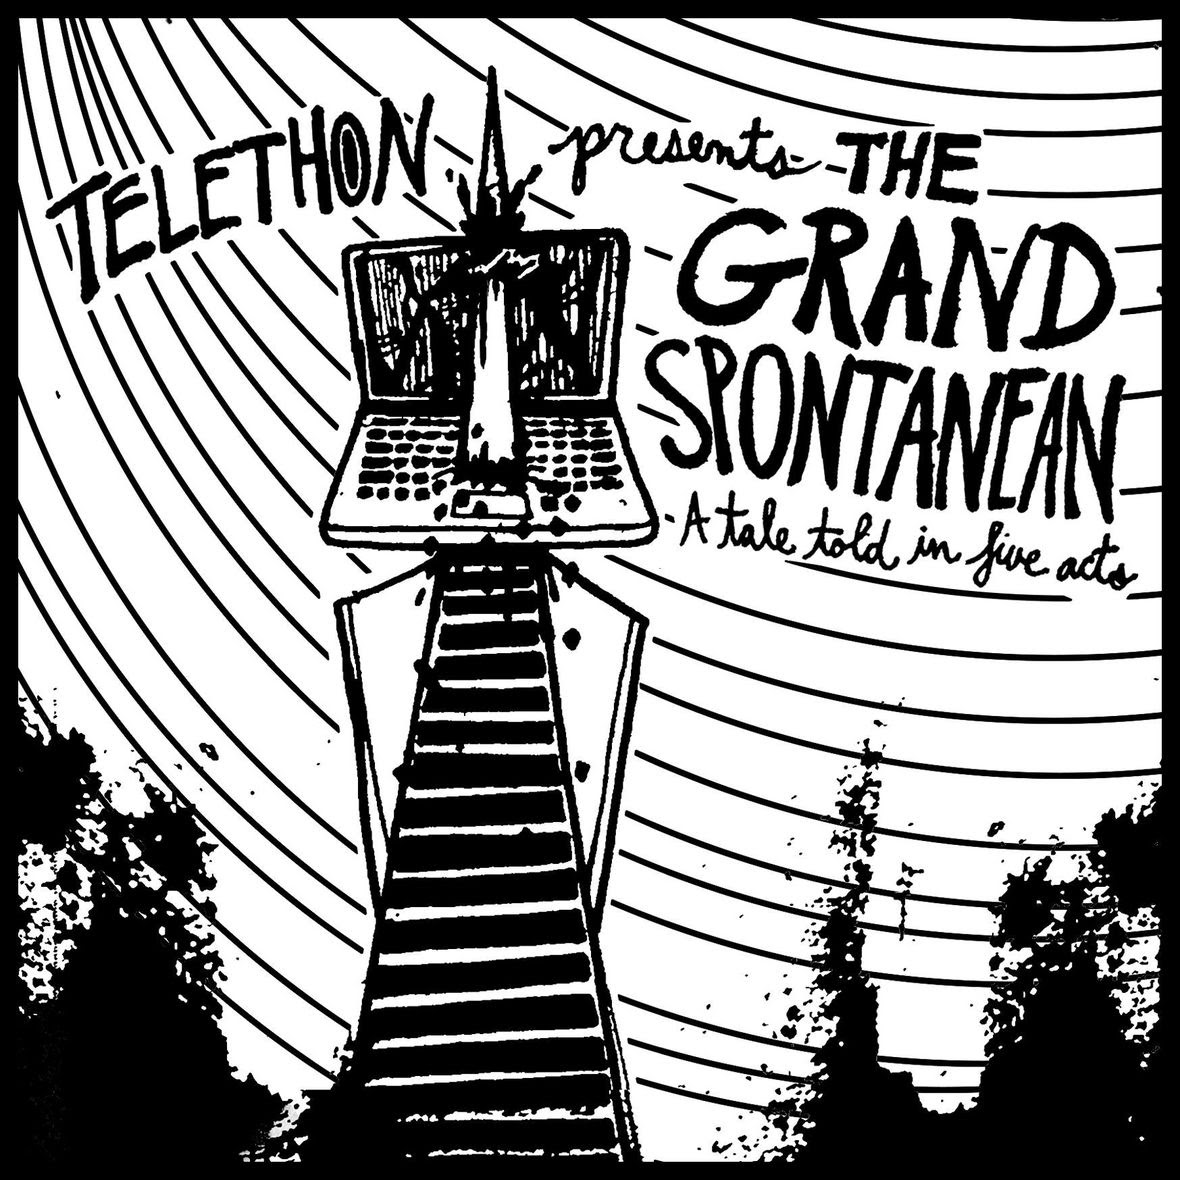 telethon album art